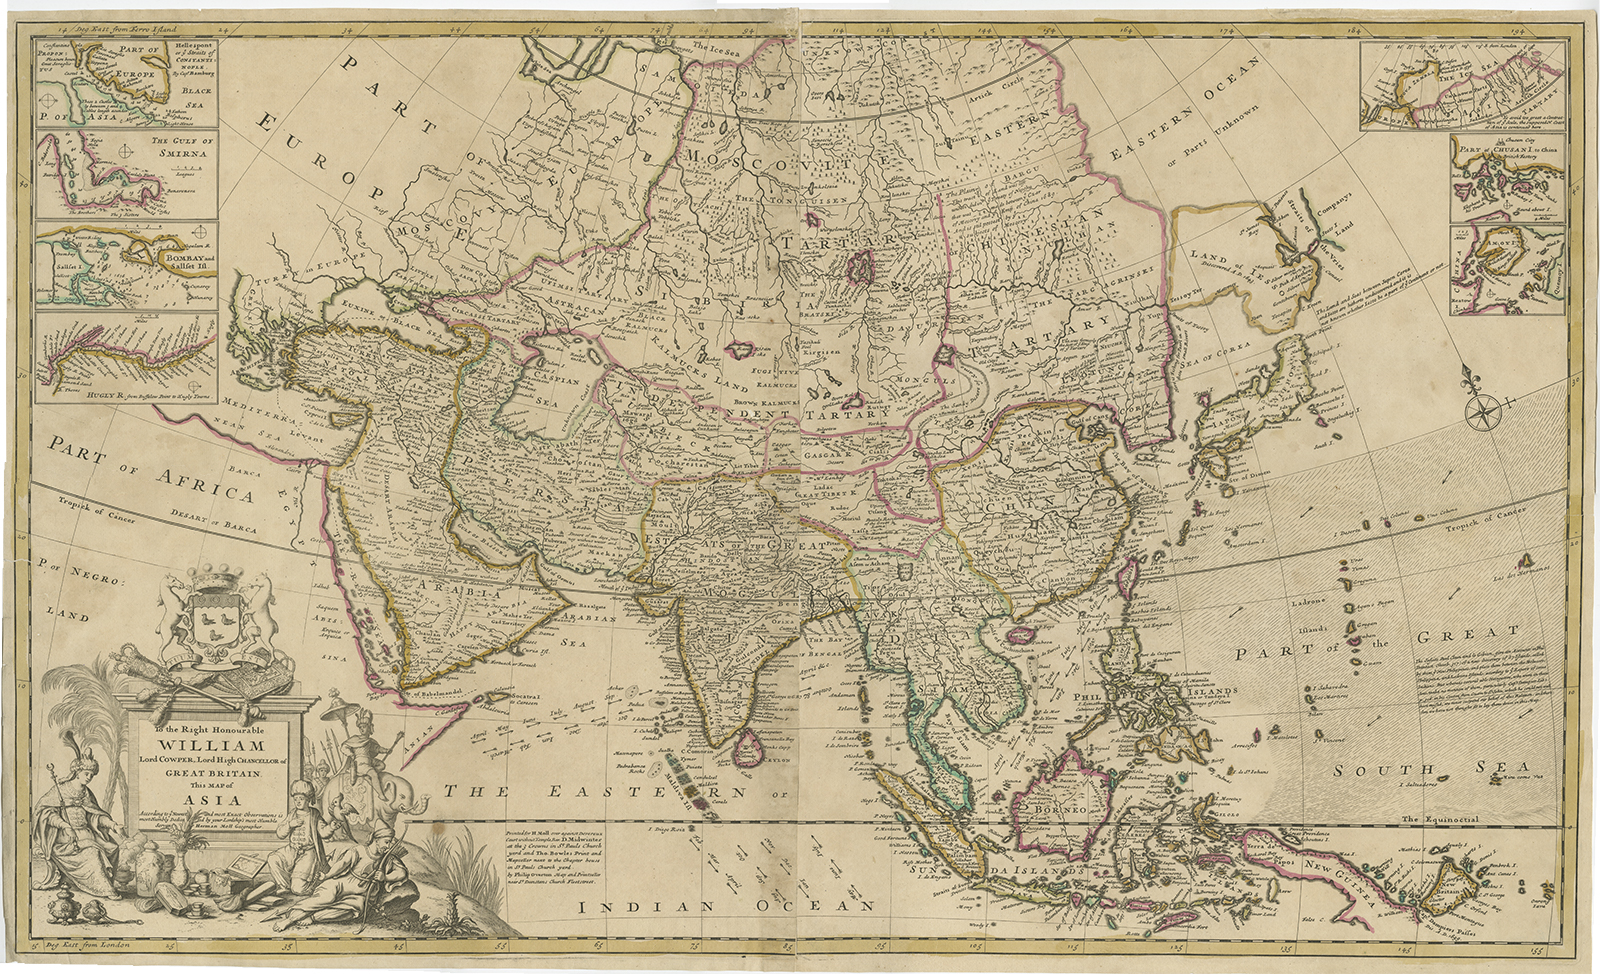 World Atlas Map Of Asia.Antique Map Of Asia By Moll C 1720 Bartele Gallerybartele Gallery